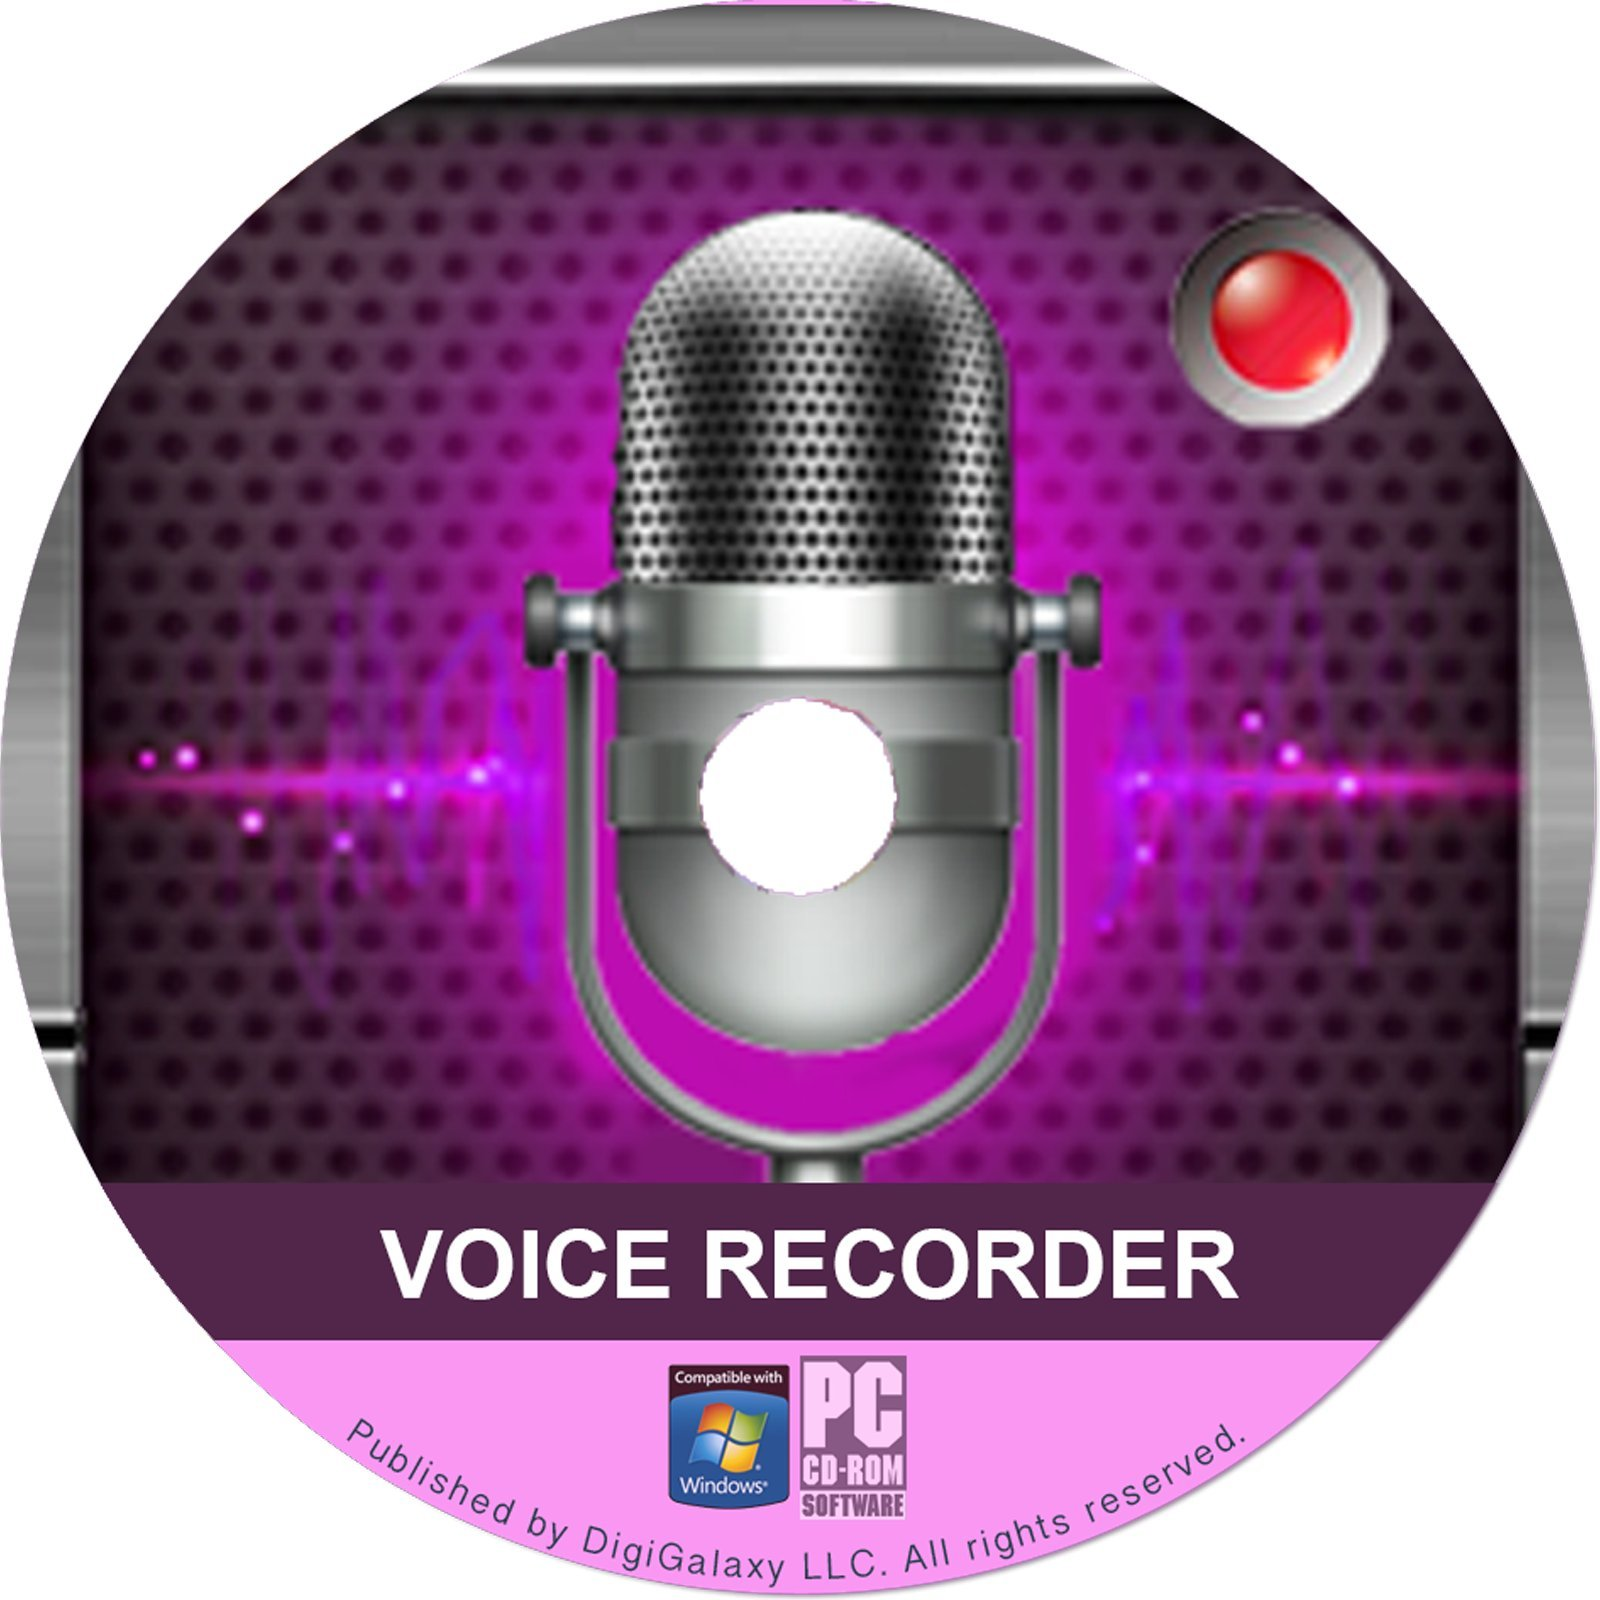 Voice Recording Softwaer by DigiGalaxy LLC